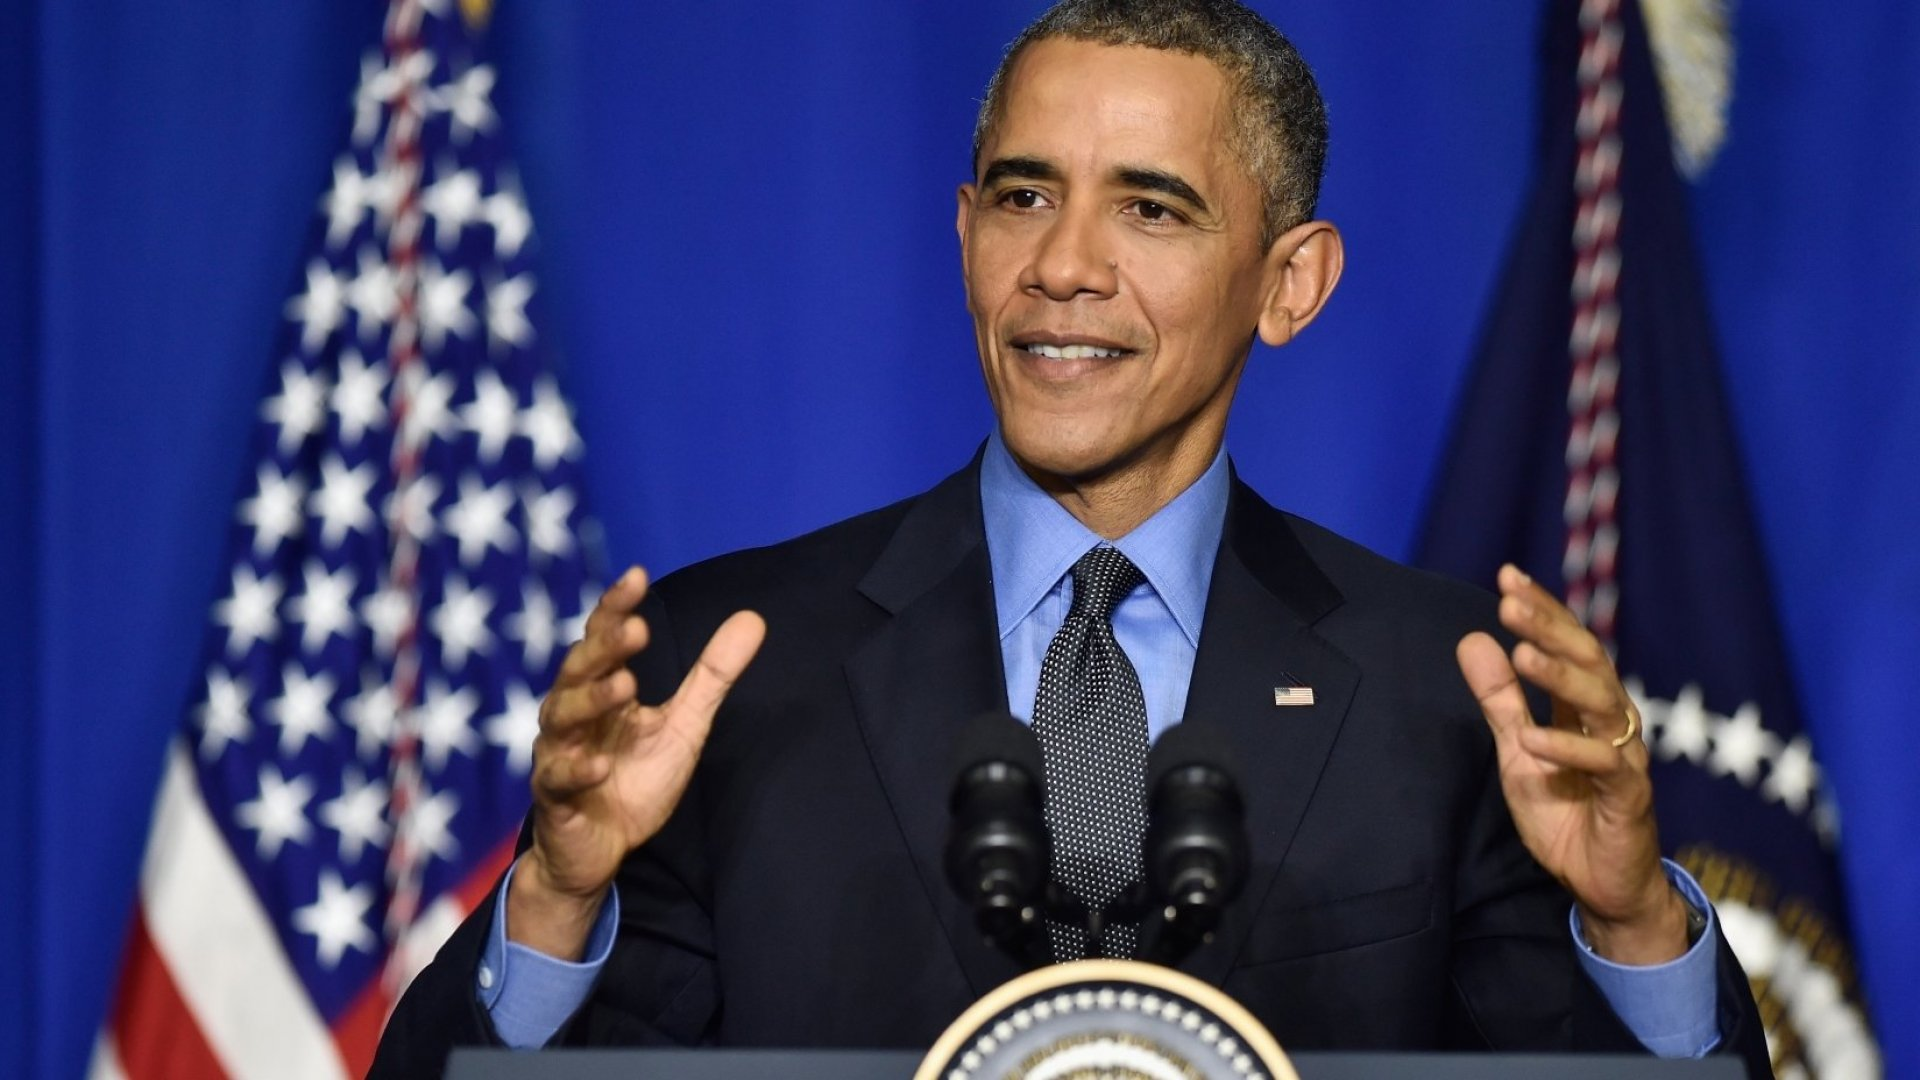 President Obama to Employers: Offering Paid Sick Leave Is Just Good Business